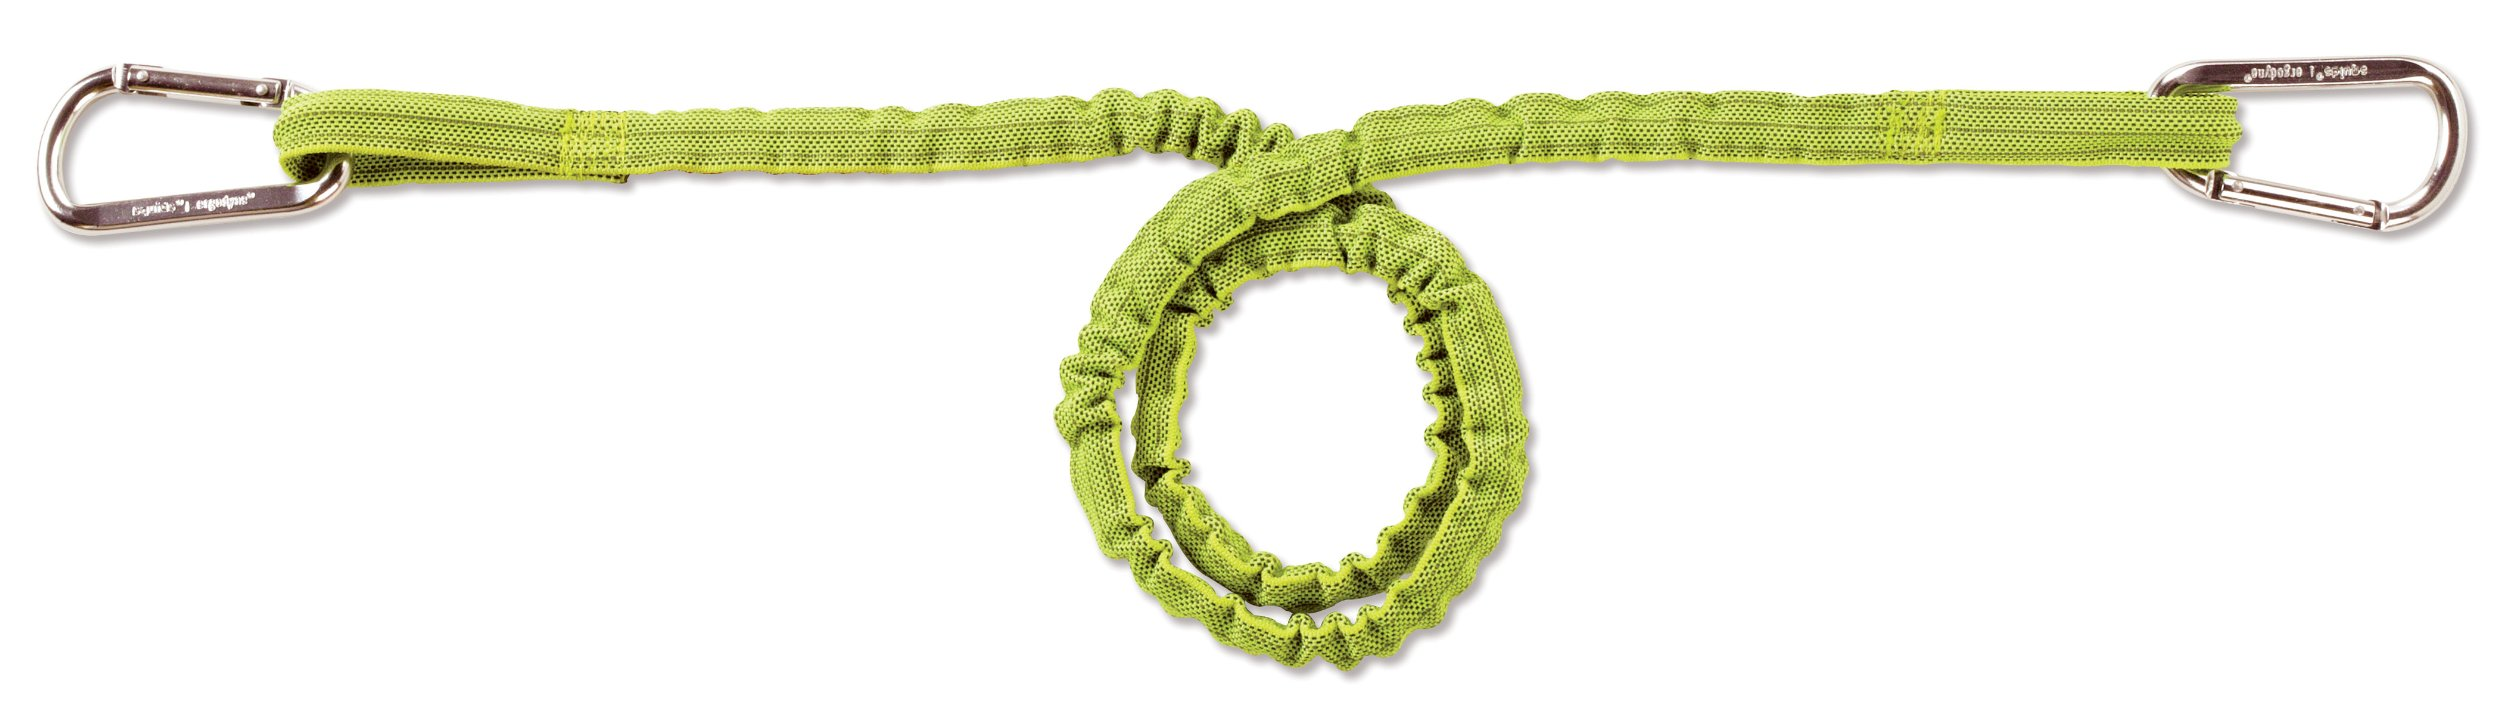 Ergodyne Squids 3110 Tool Lanyard with Dual Aluminum Carabiners, Extended Length, Lime, 10 Pounds